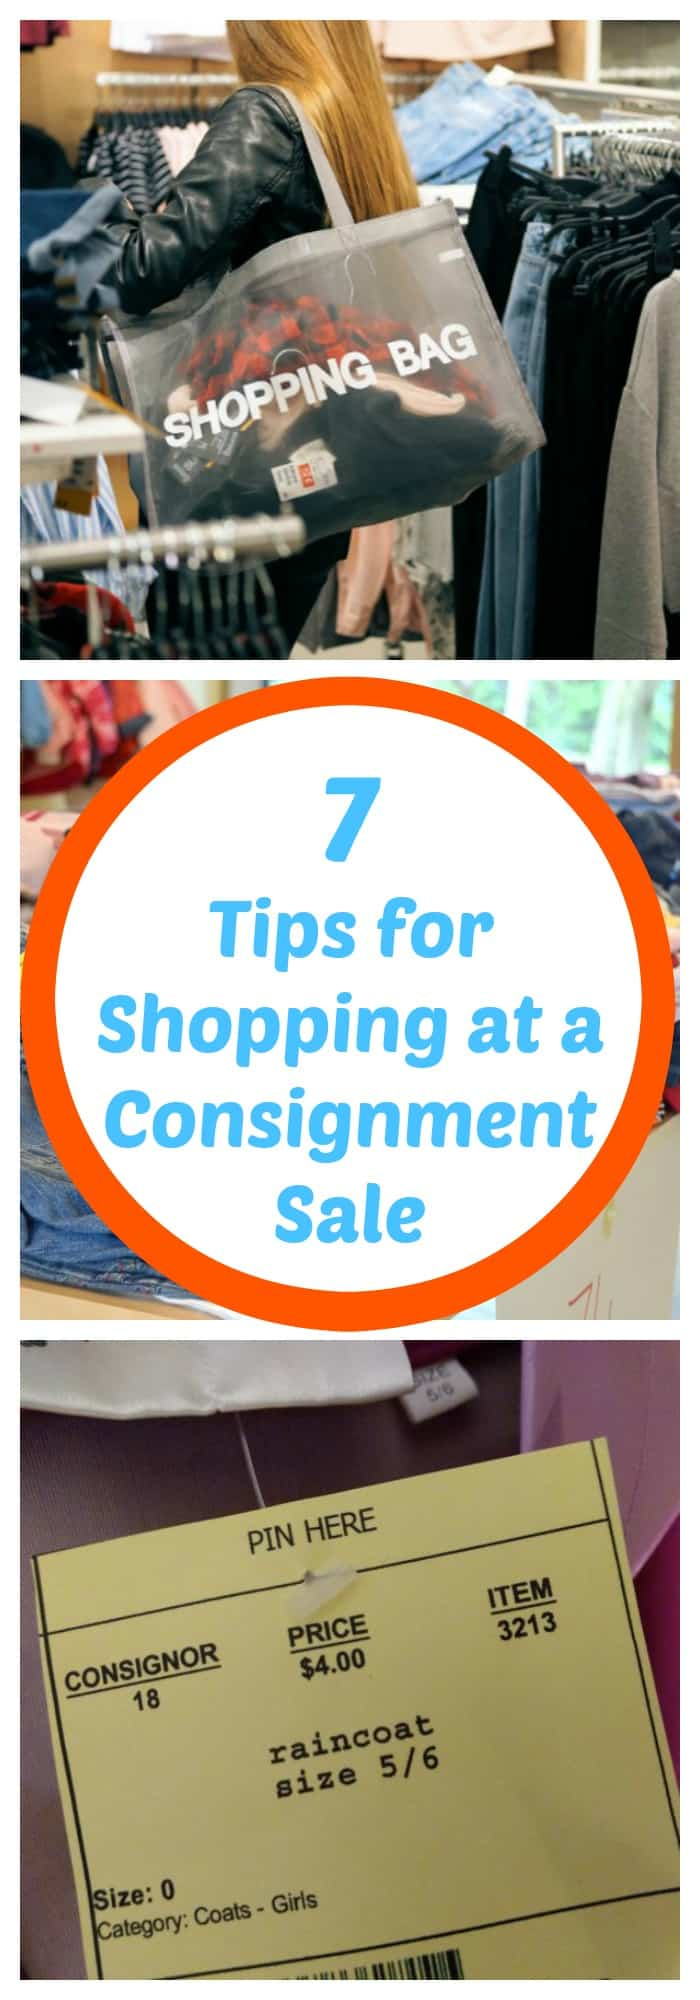 Shopping--7 Tips for Shopping at a Consignment Sale--The Organized Mom